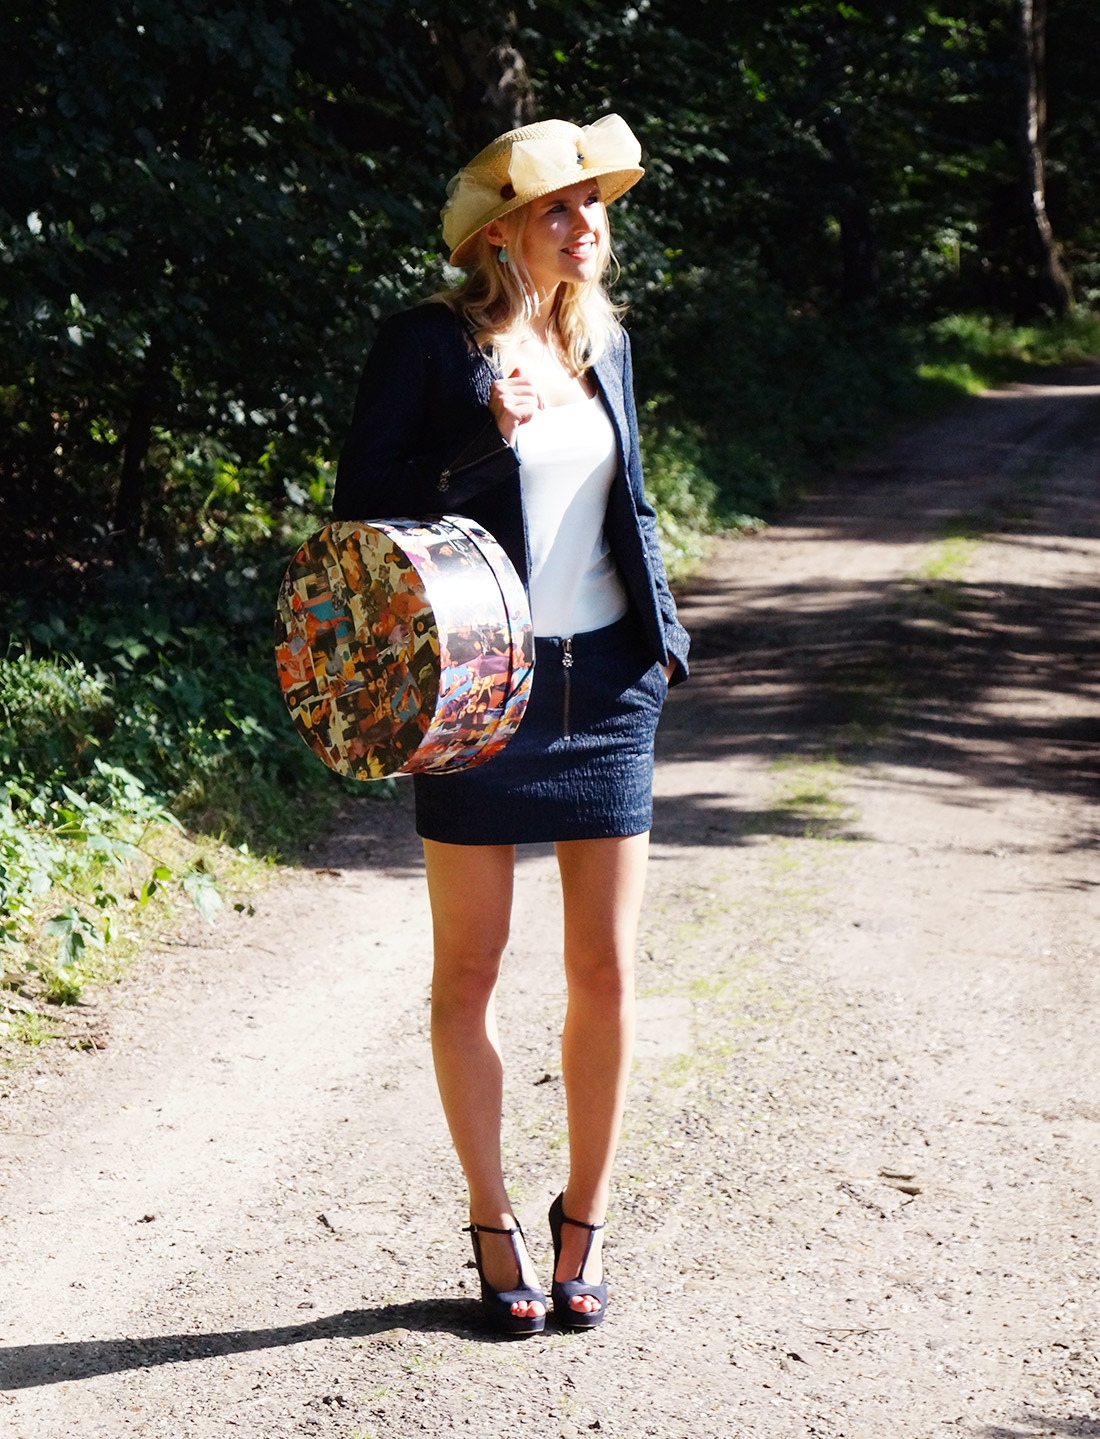 Bag-at-You---Fashion-blog---Hat-box-bag---Wedding-outfit-guest---Tenue-de-ville